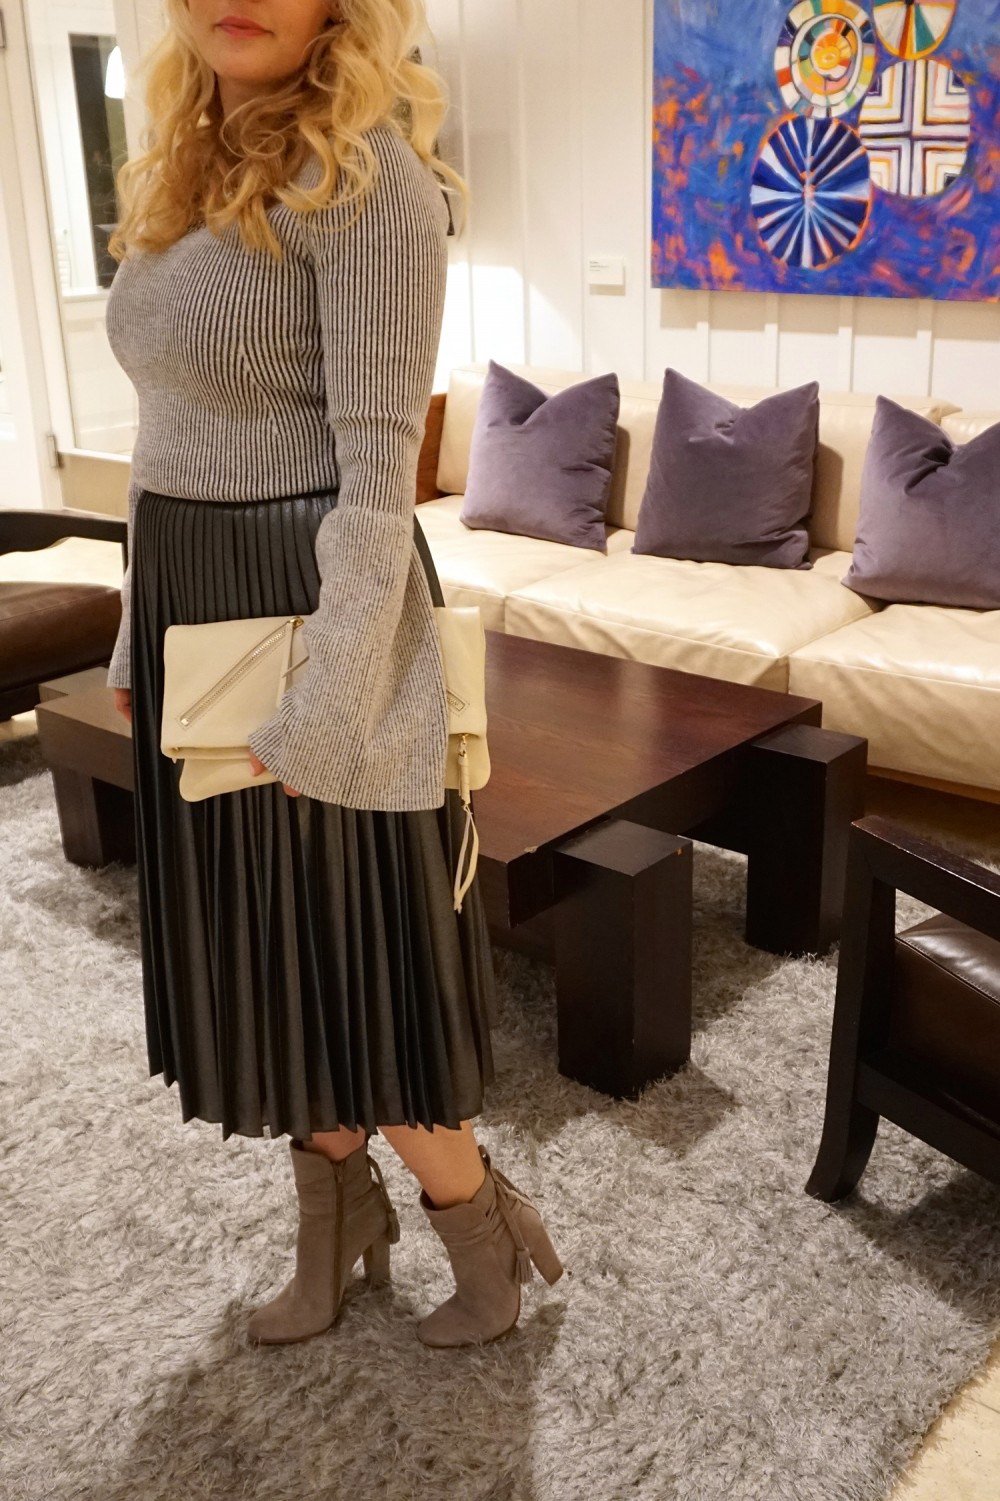 Trumpet Bell Sleeve Sweater-Ted Baker-Who What Wear for Target-Outfit Inspiration-Metallic Pleated Skirt-Steve Madden Suede Boots-Have Need Want 9